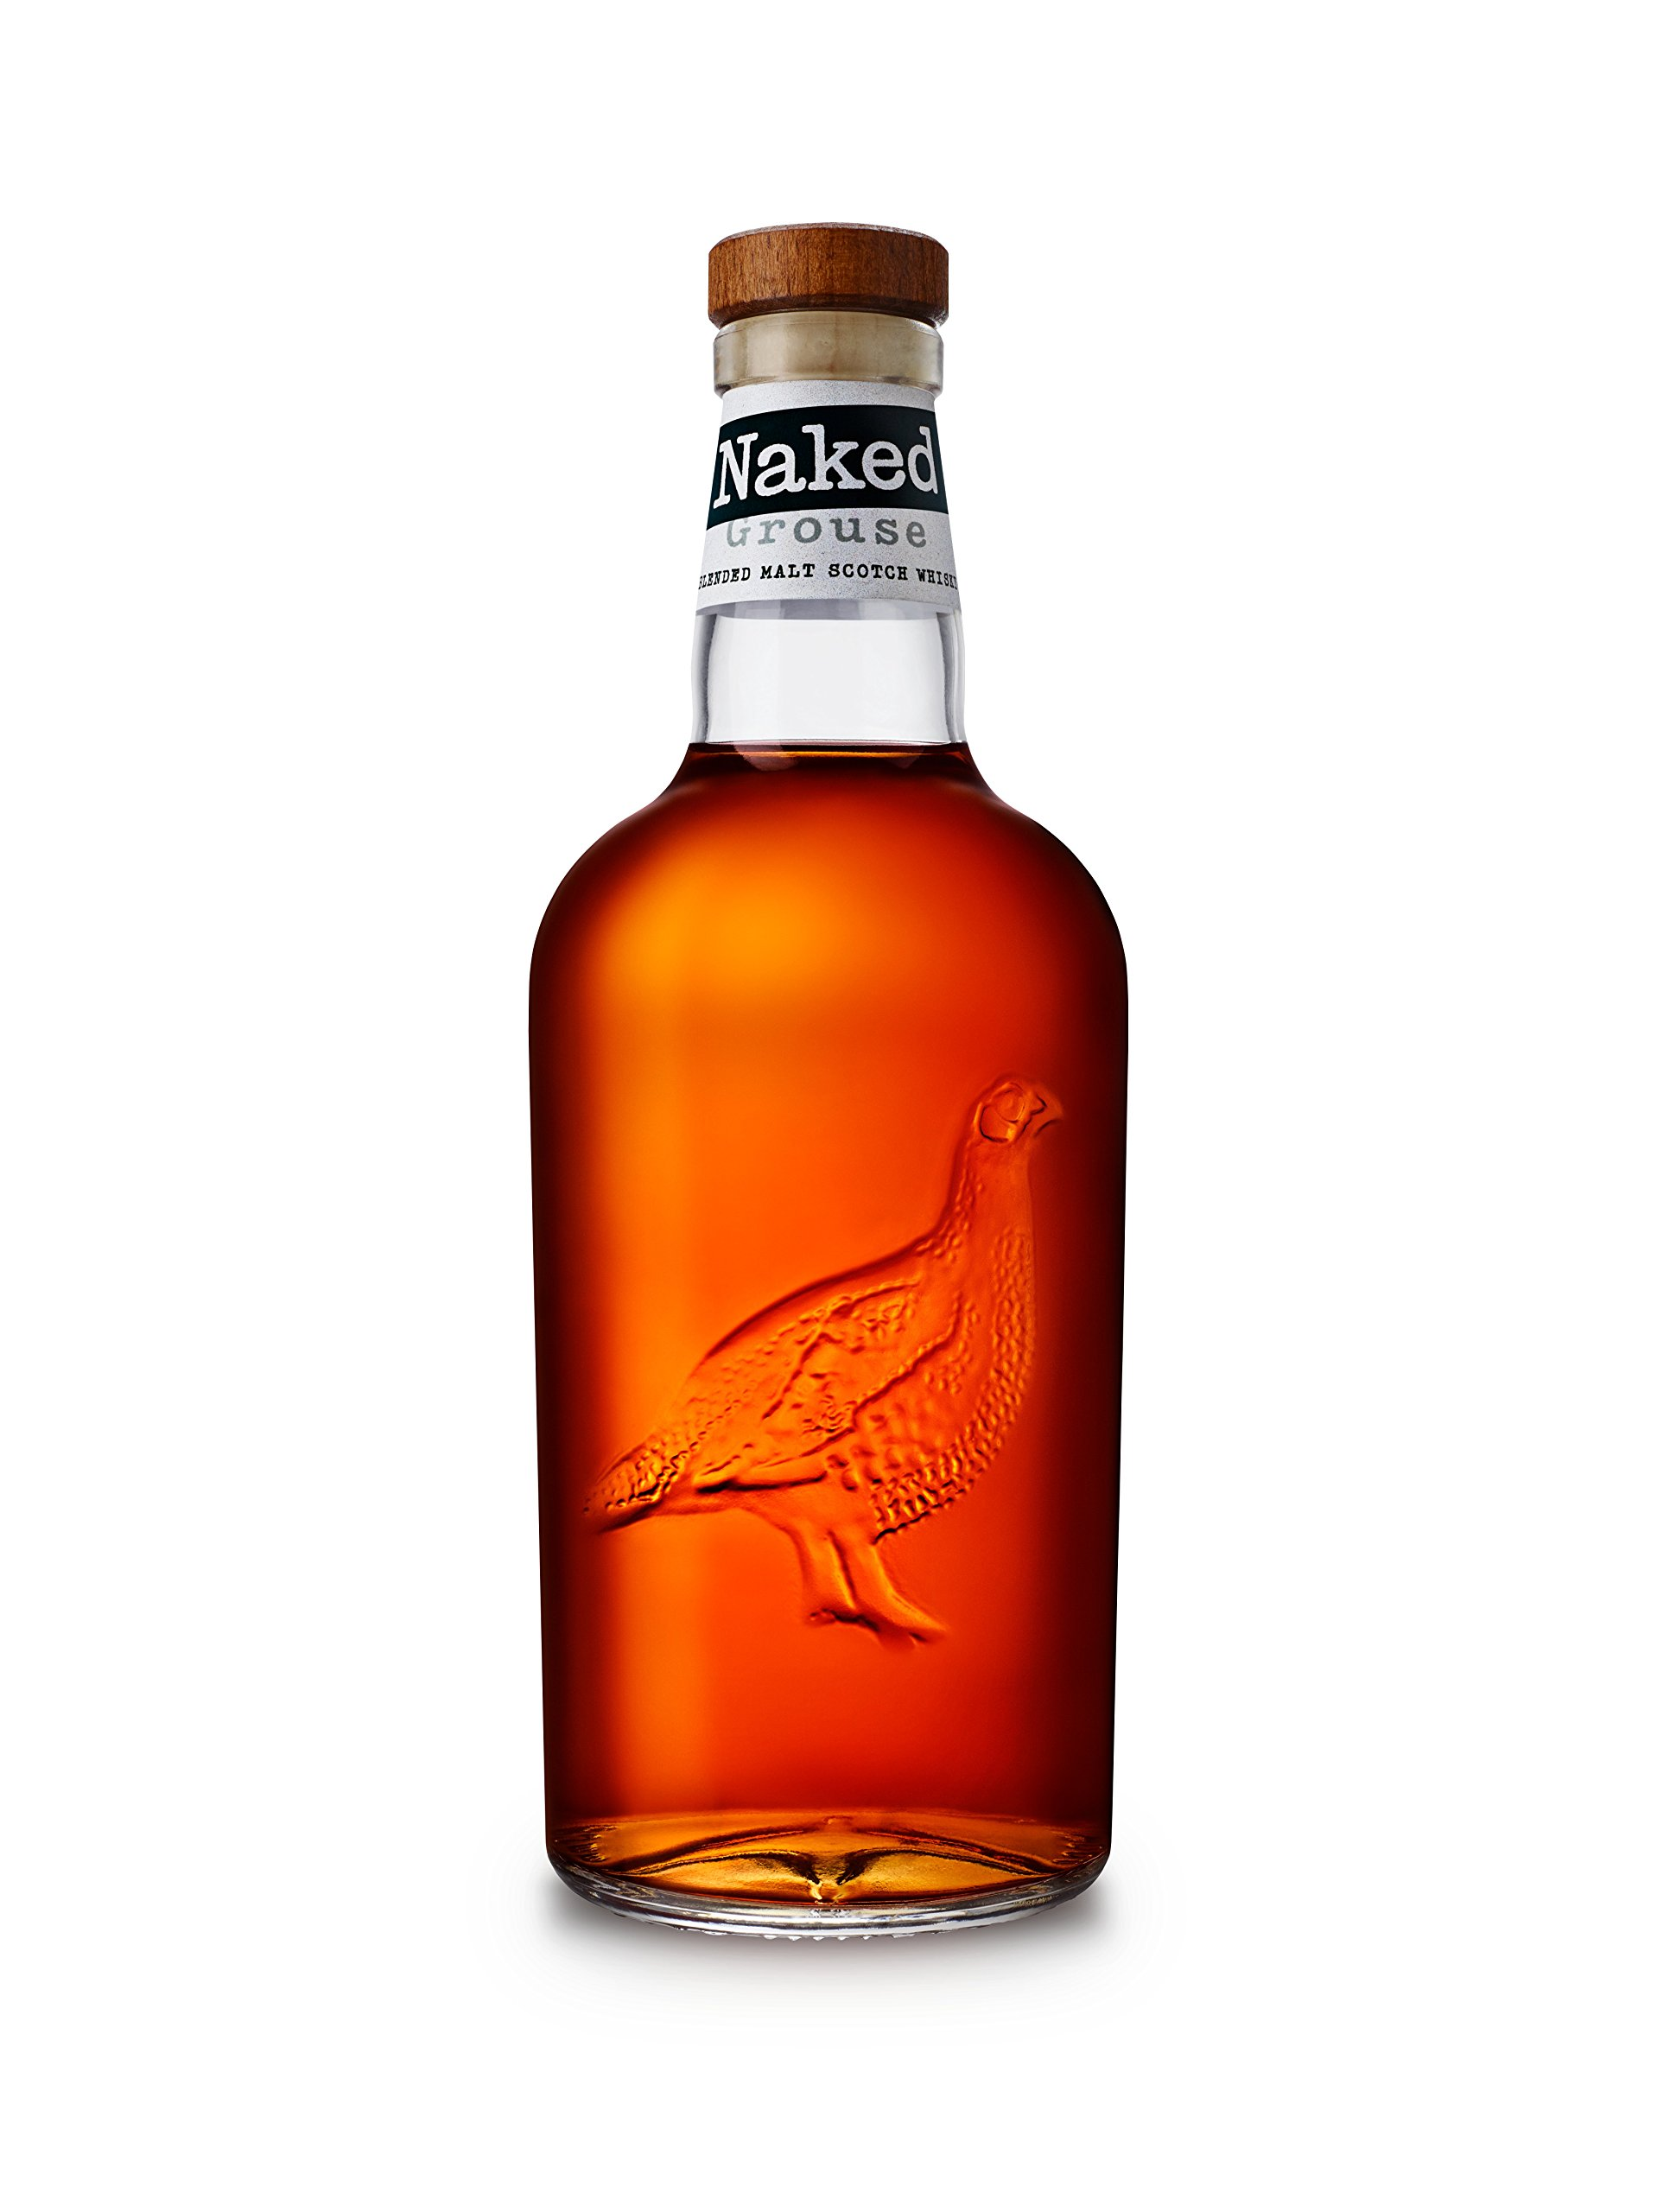 Naked Grouse Blended Malt Scotch Whisky, 70 cl